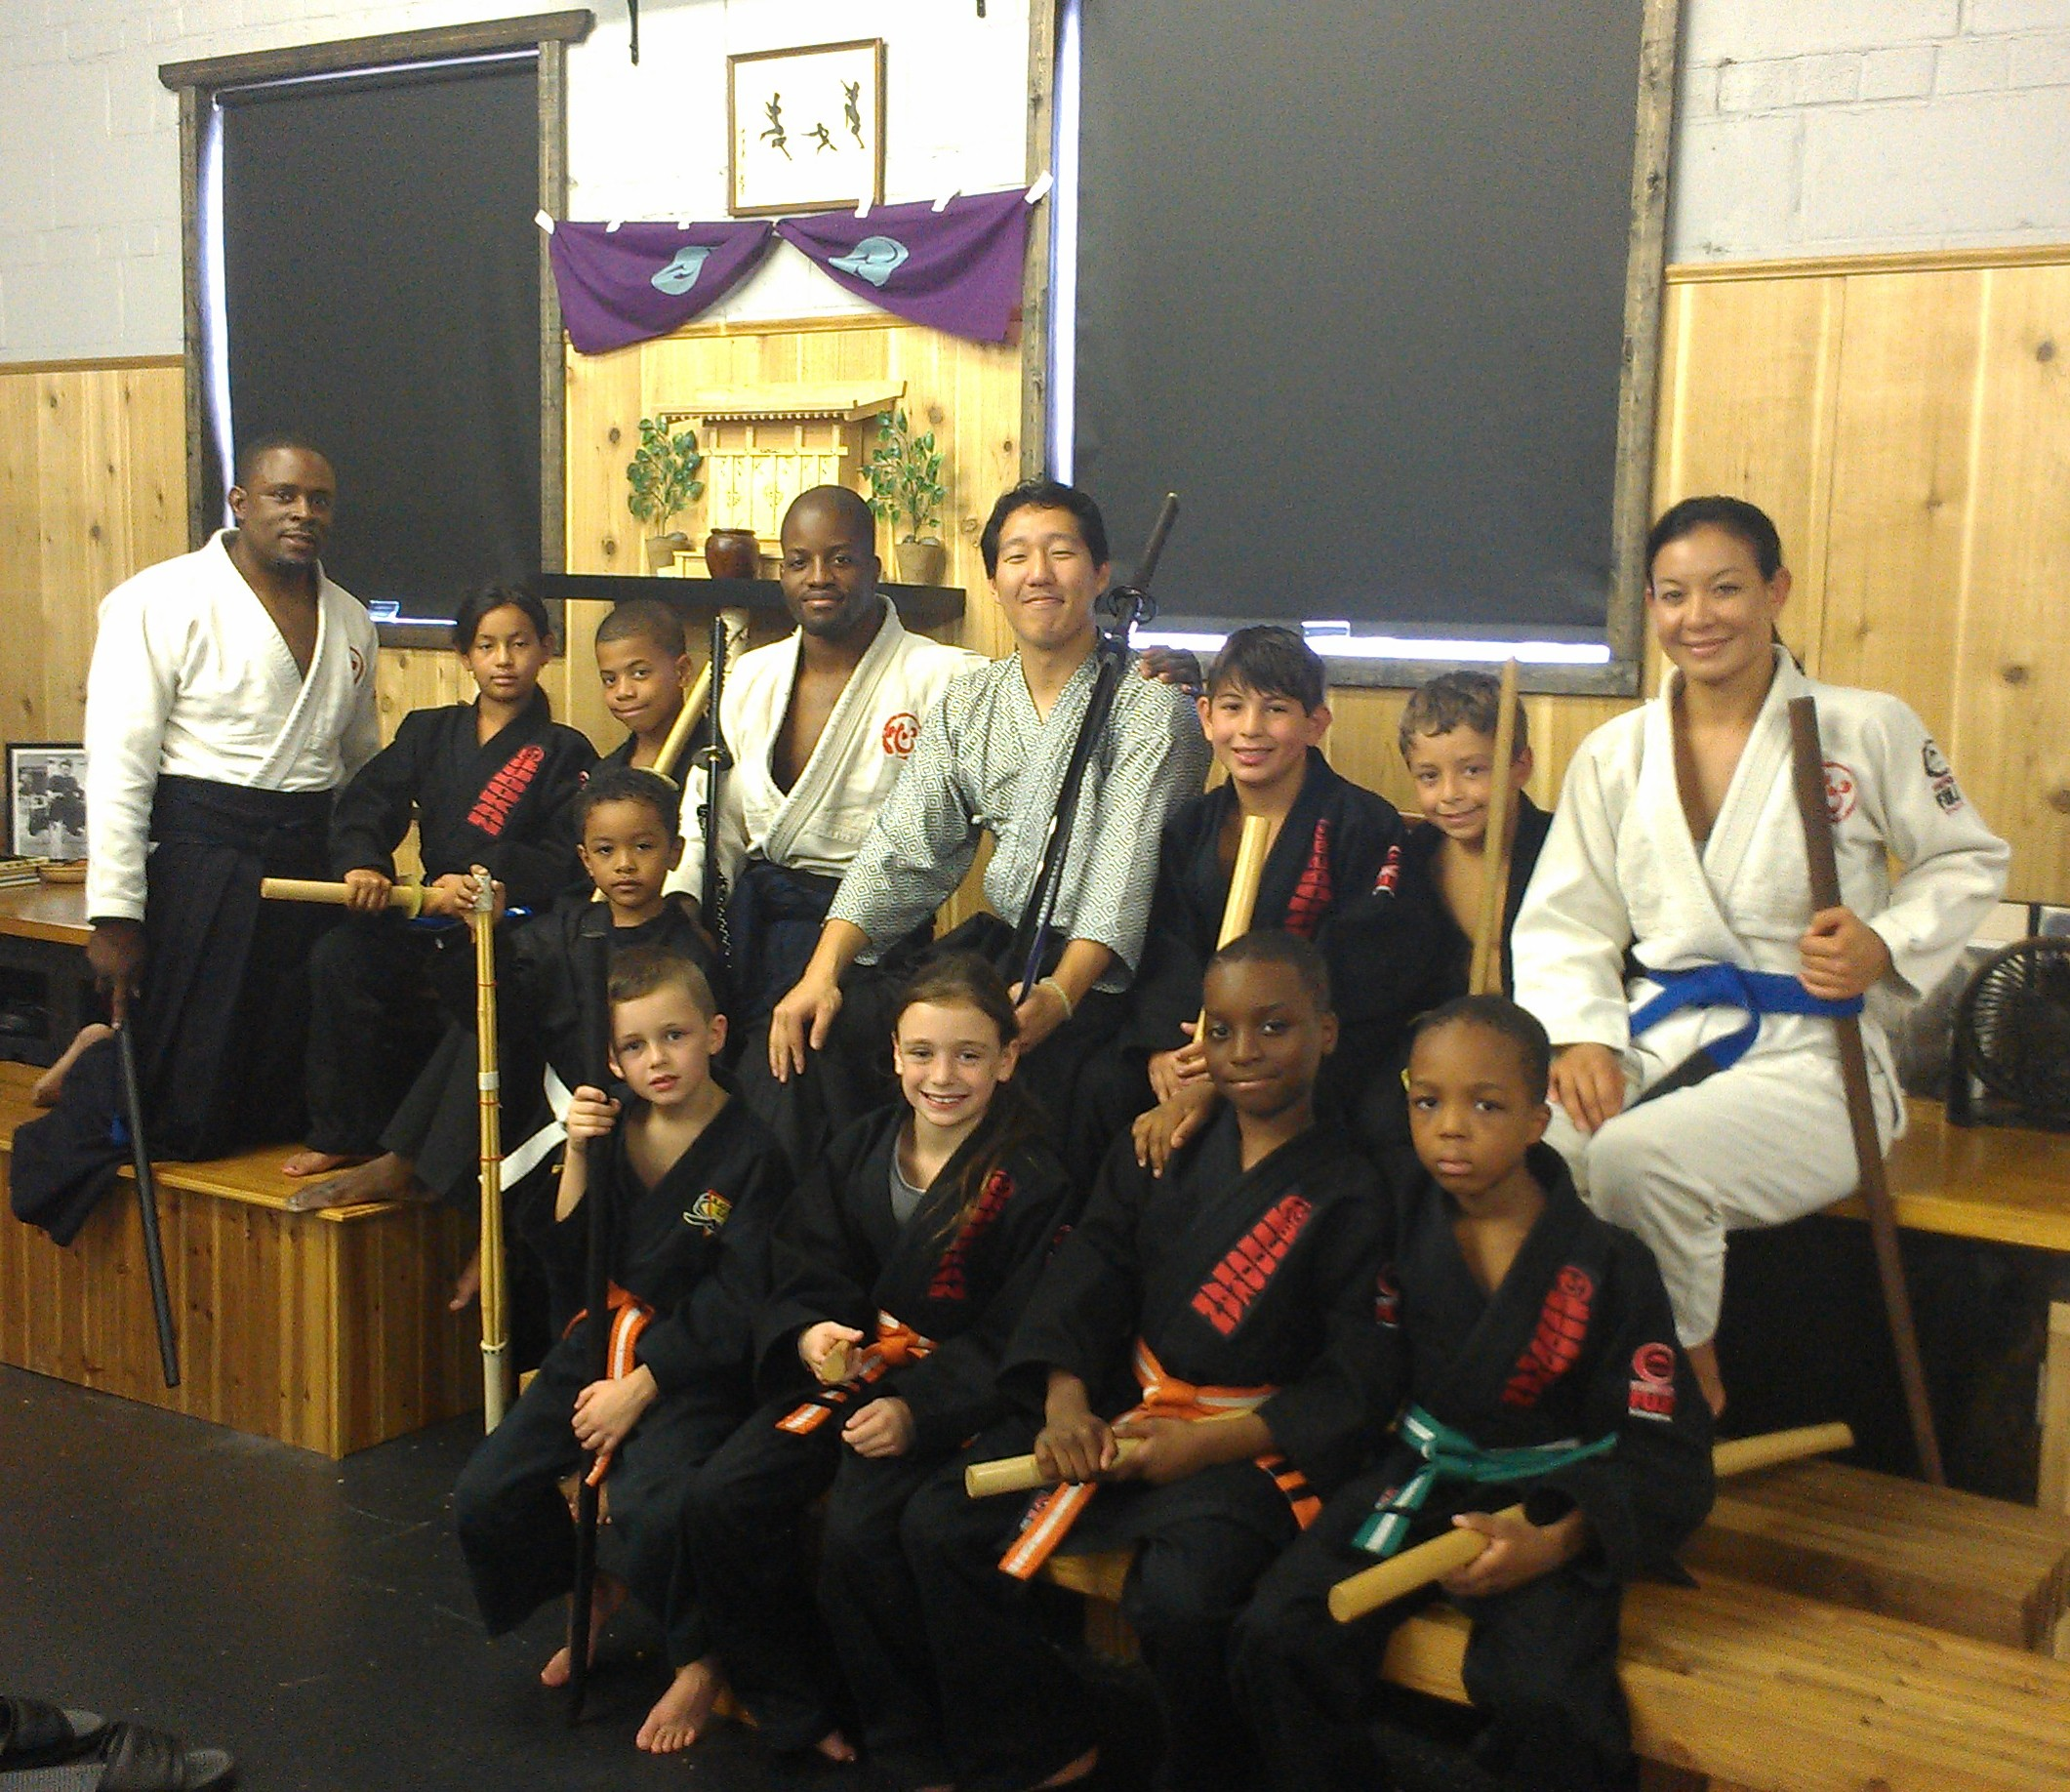 The Budokan Summer camp crew each got a chance to cut with the guidance of ...